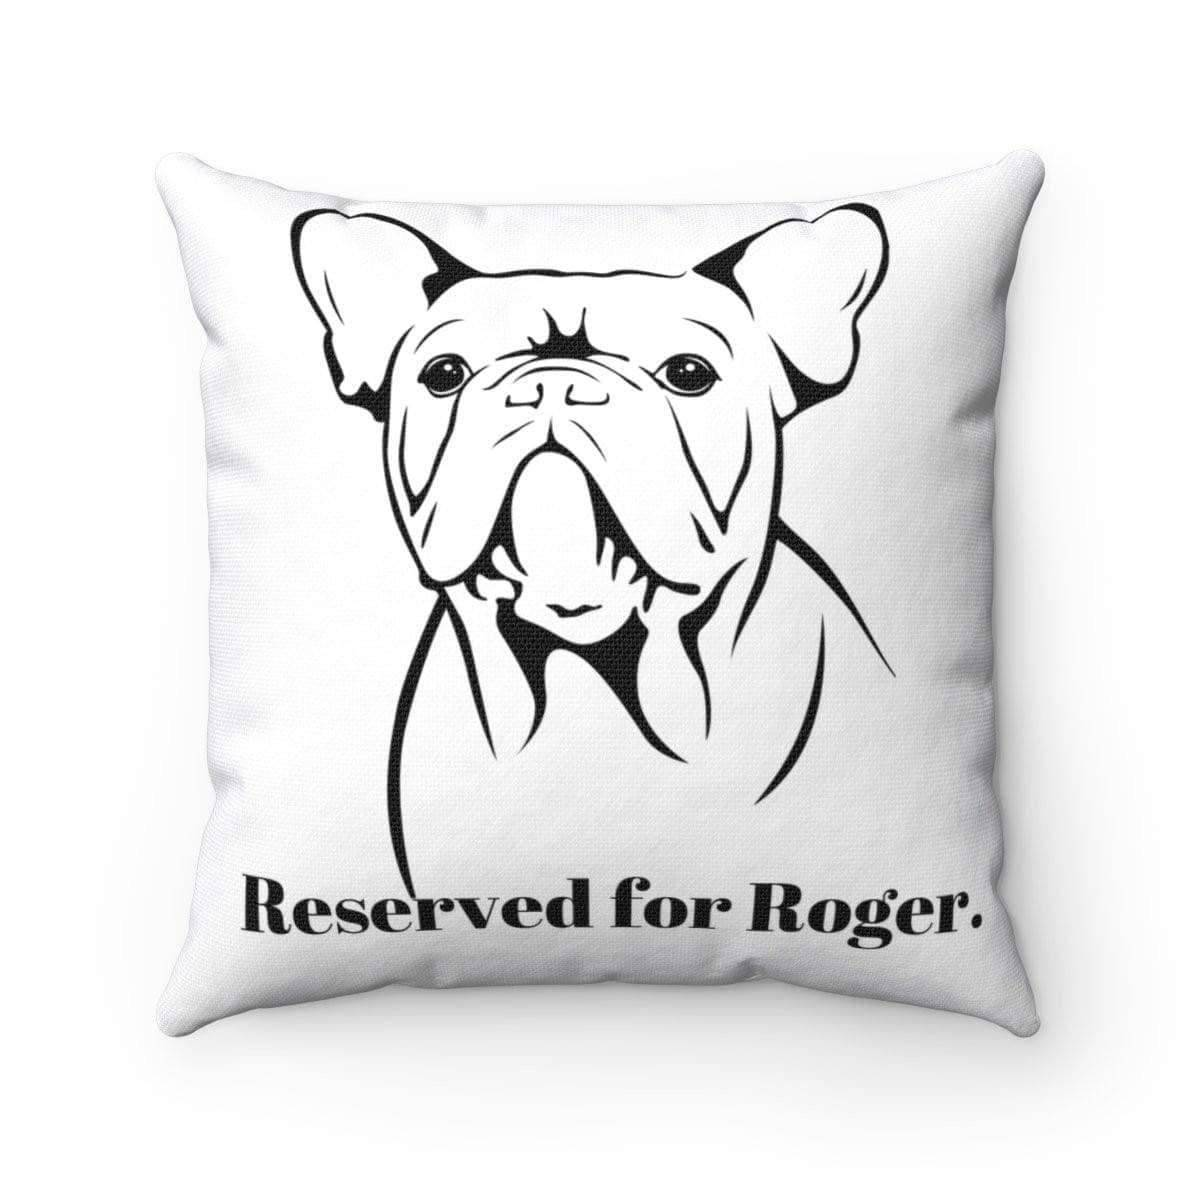 Personalised Square Pillow | Reserved For Your Pet - SquishyFacedCrew